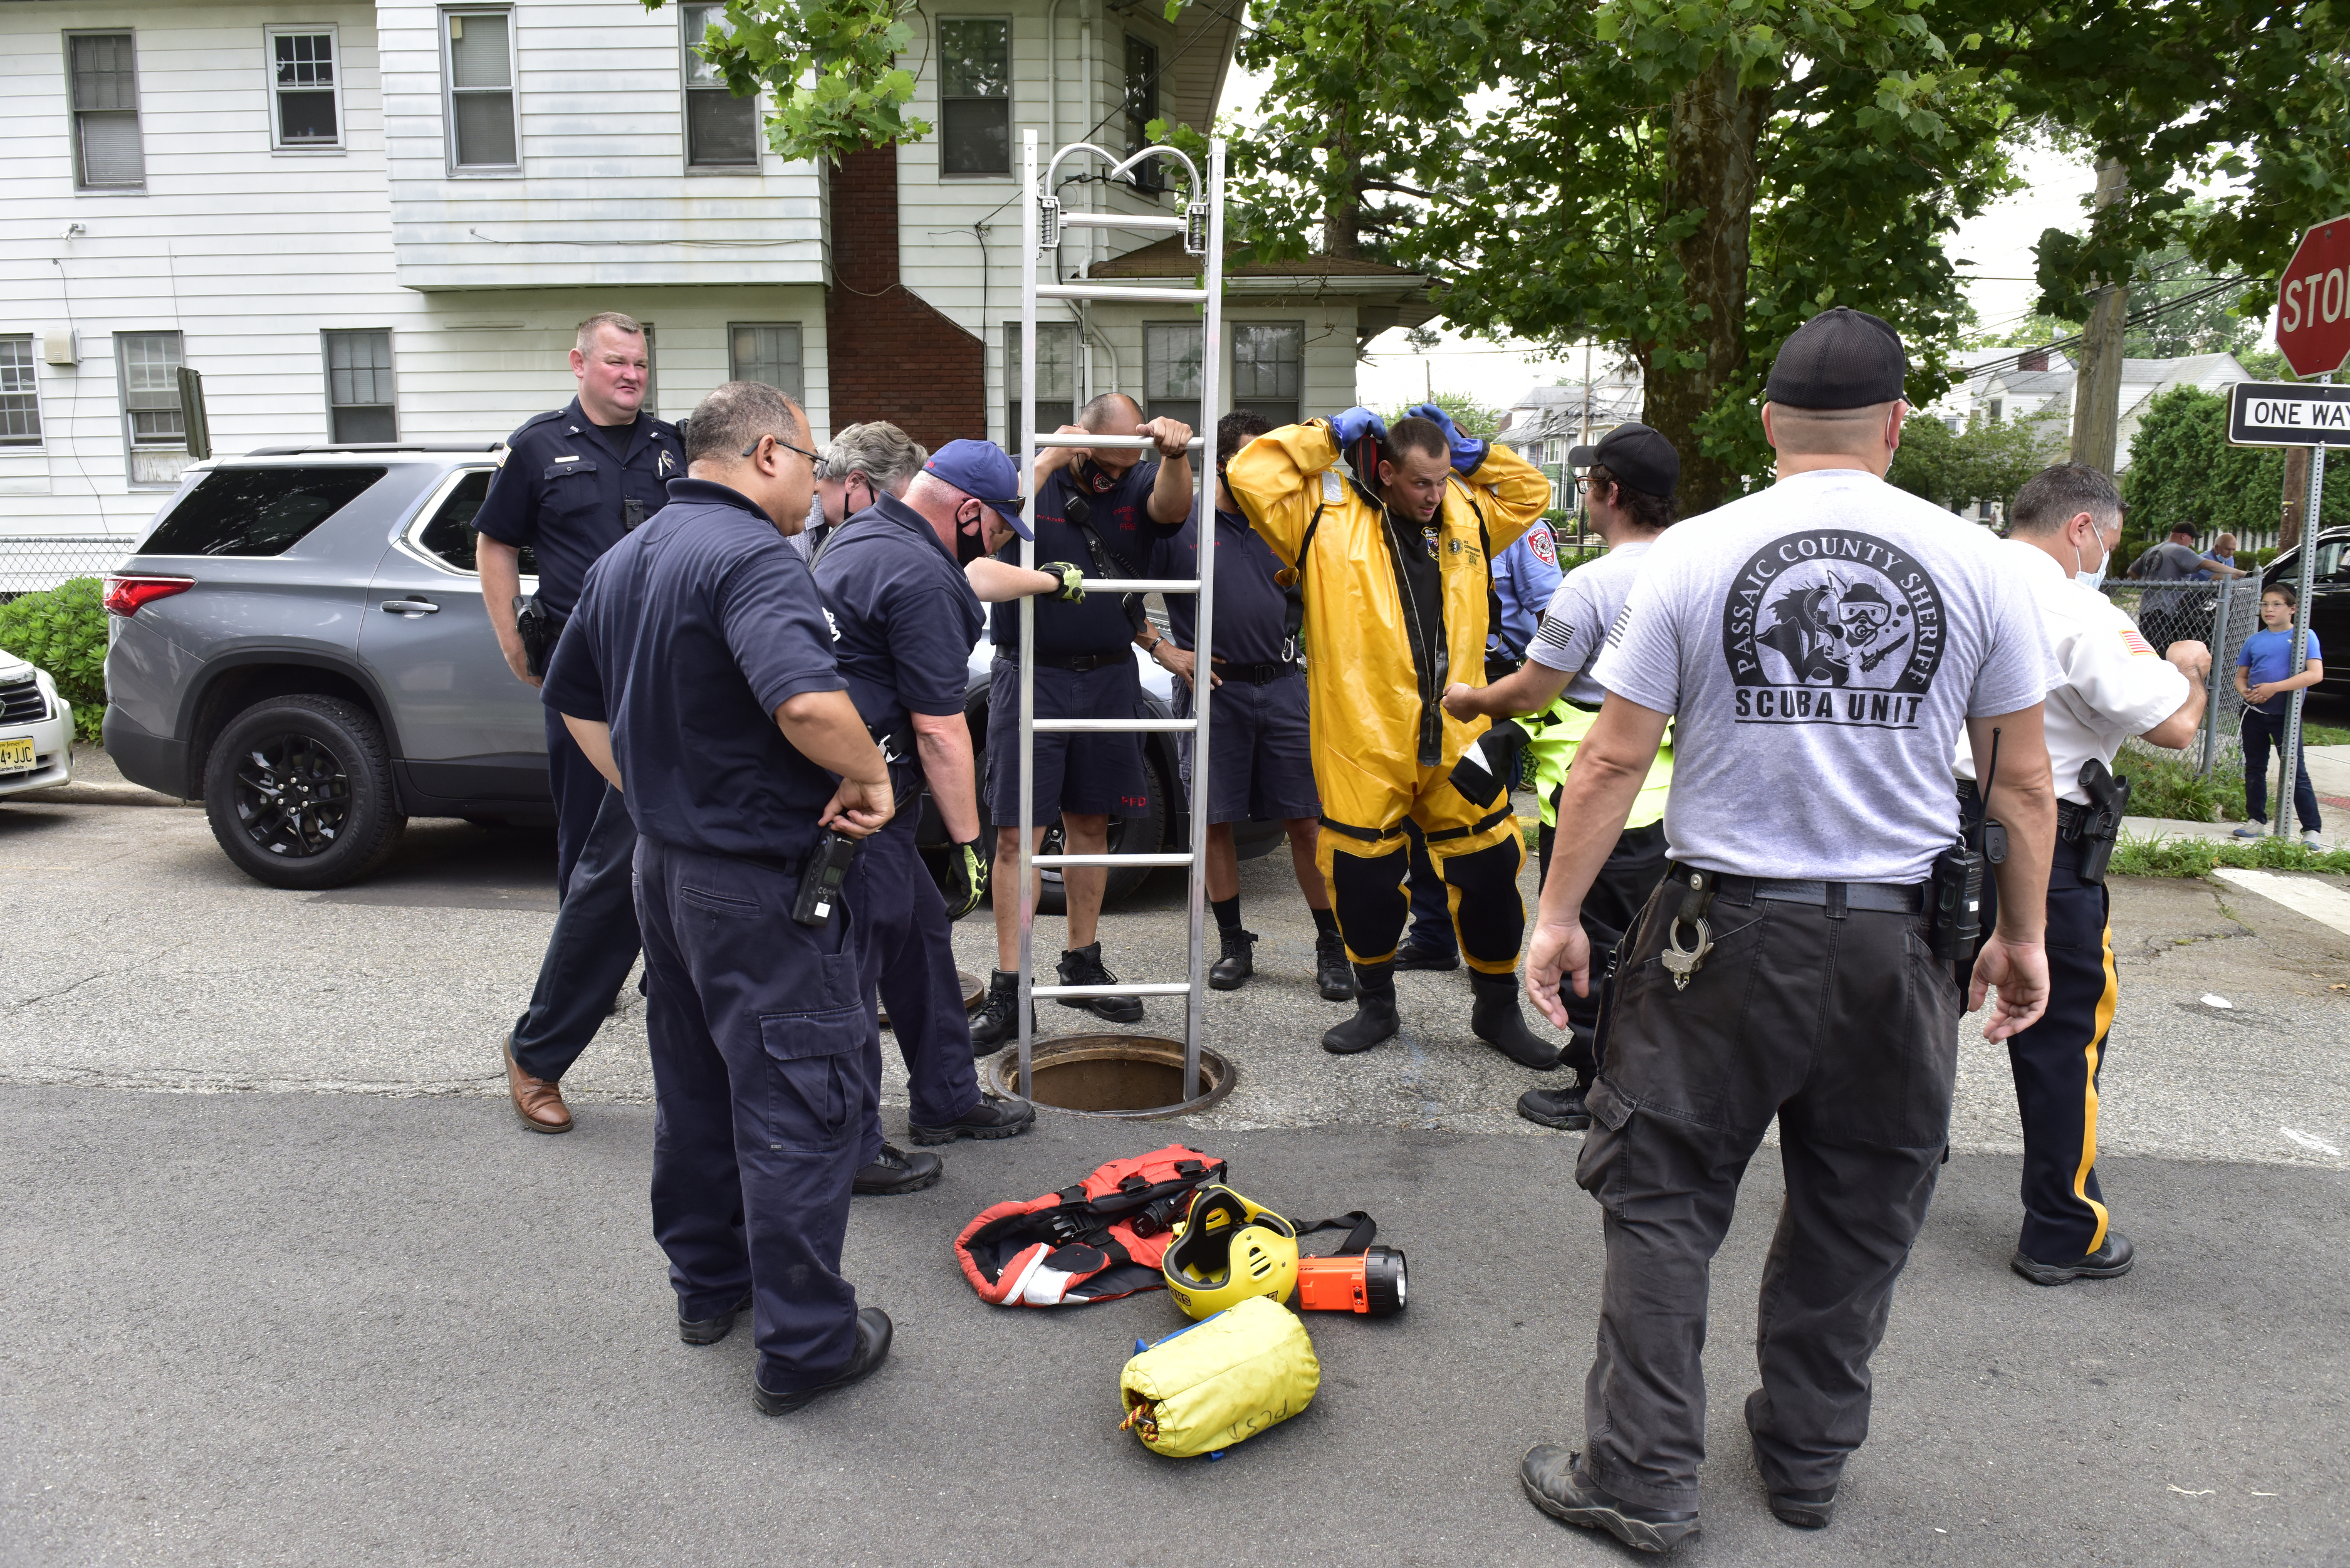 Emergency personnel search to find a Toyota Prius that was swept away into a canal on Monday July 6, 2020 in Passaic, N.J.